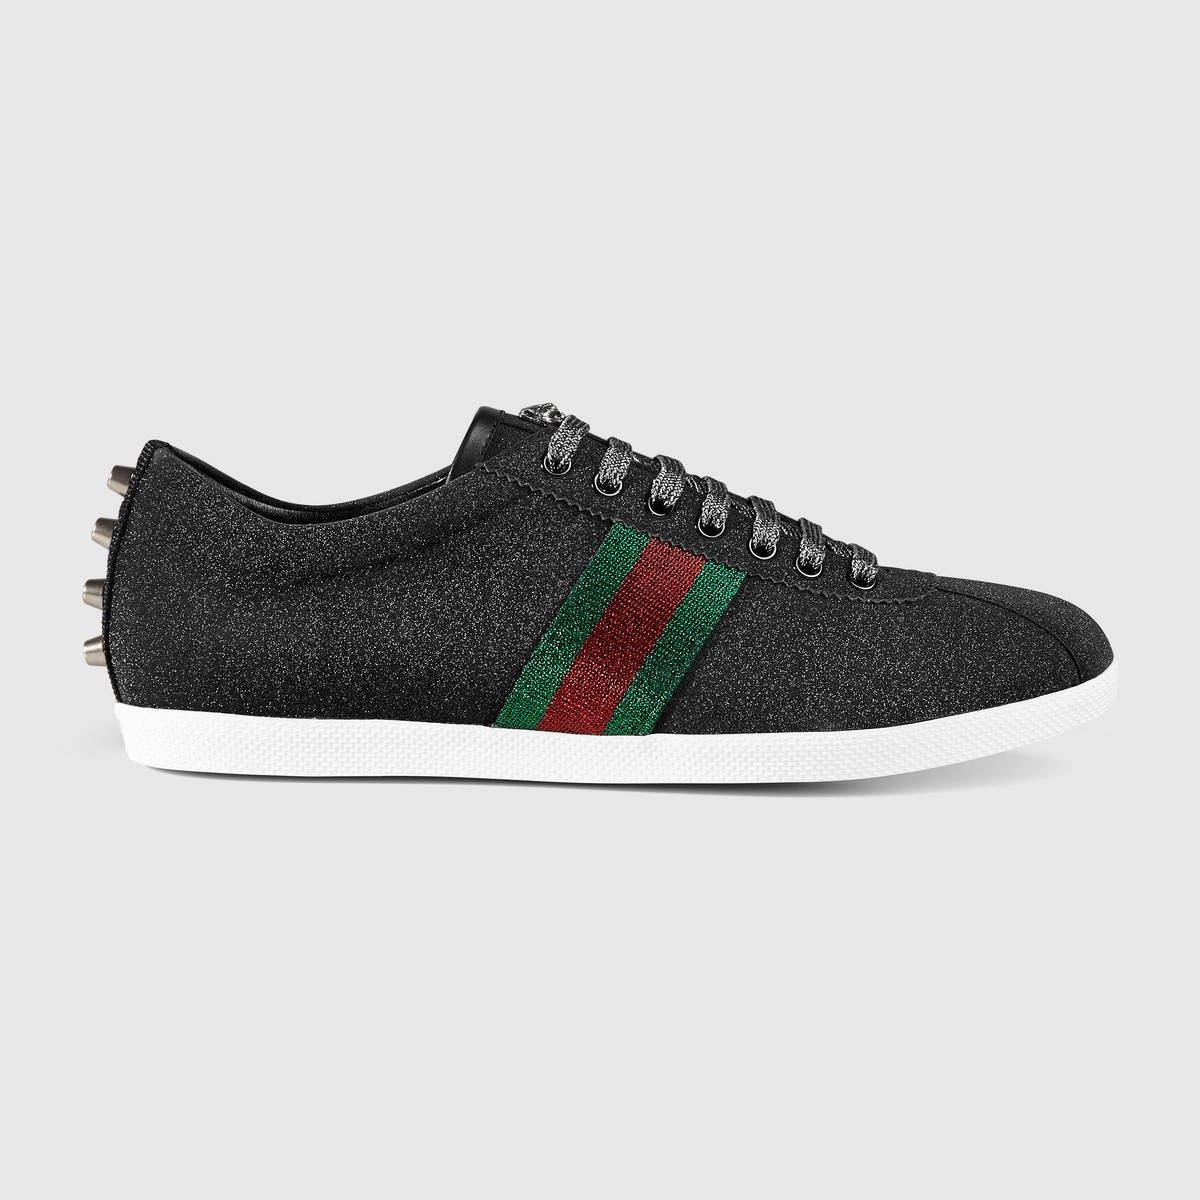 e0658919a2c GUCCI Glitter Web sneaker - black glitter fabric.  gucci  shoes ...